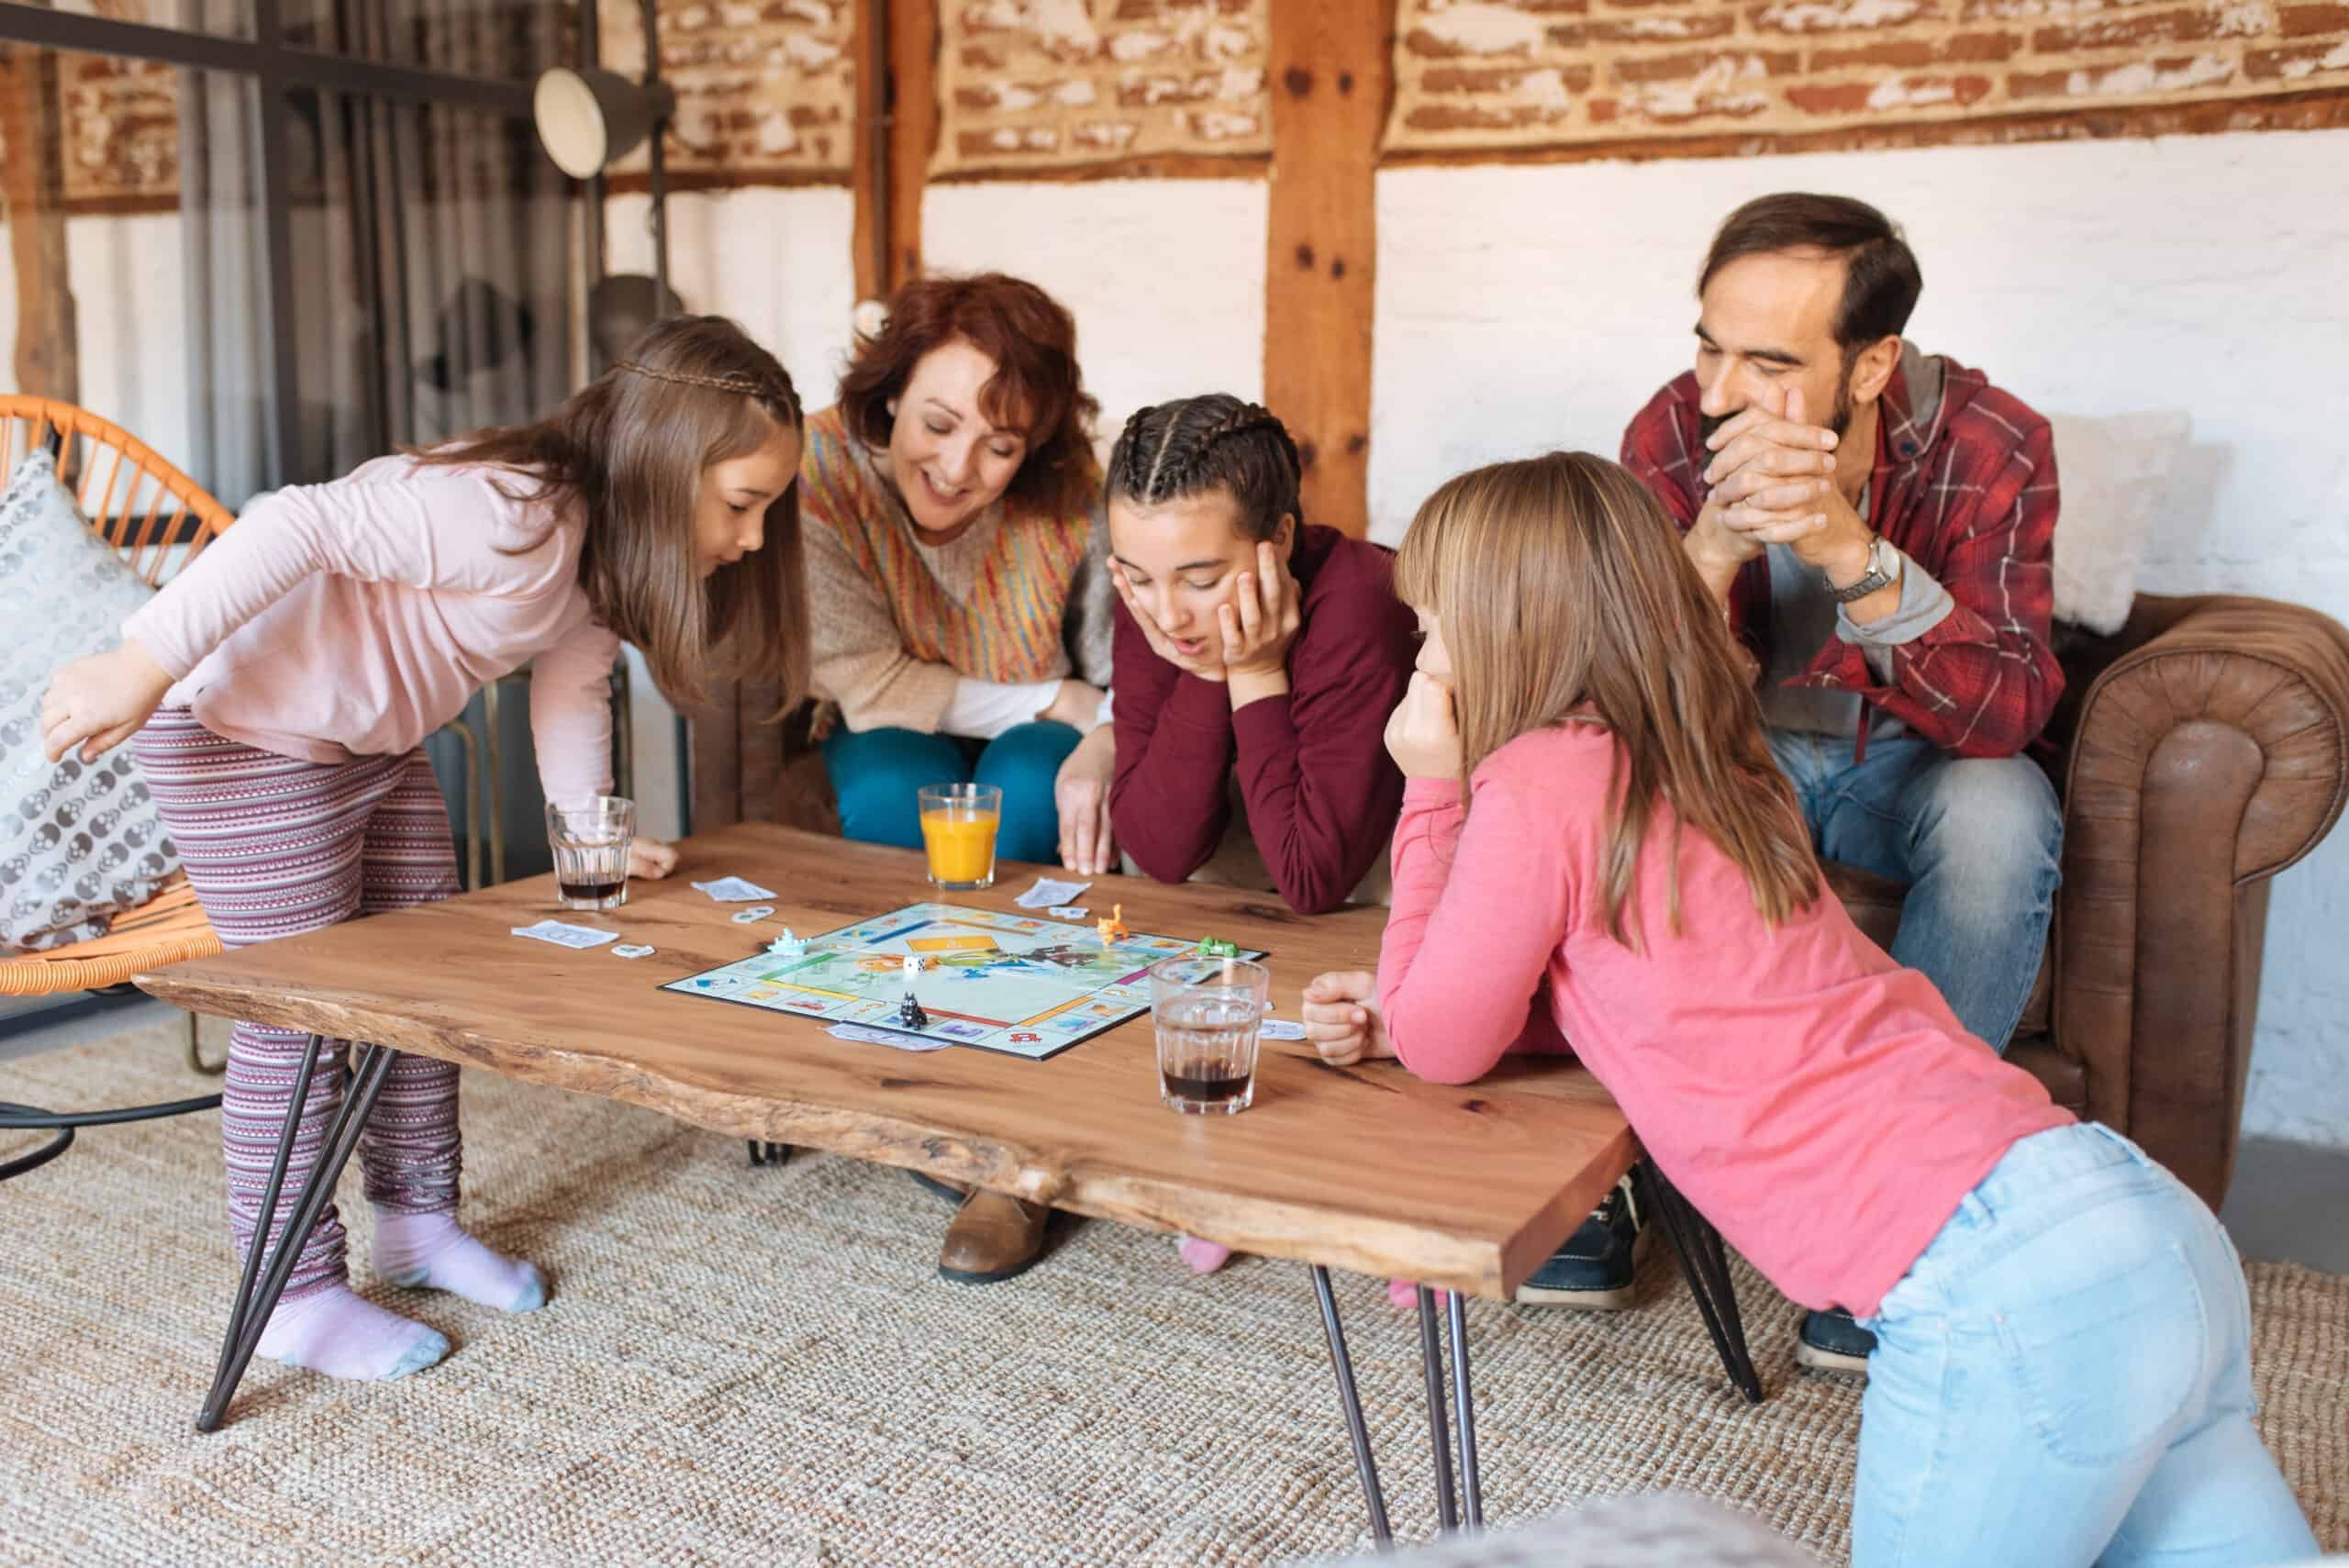 25 Bible Board Games Perfect For Family Game Night